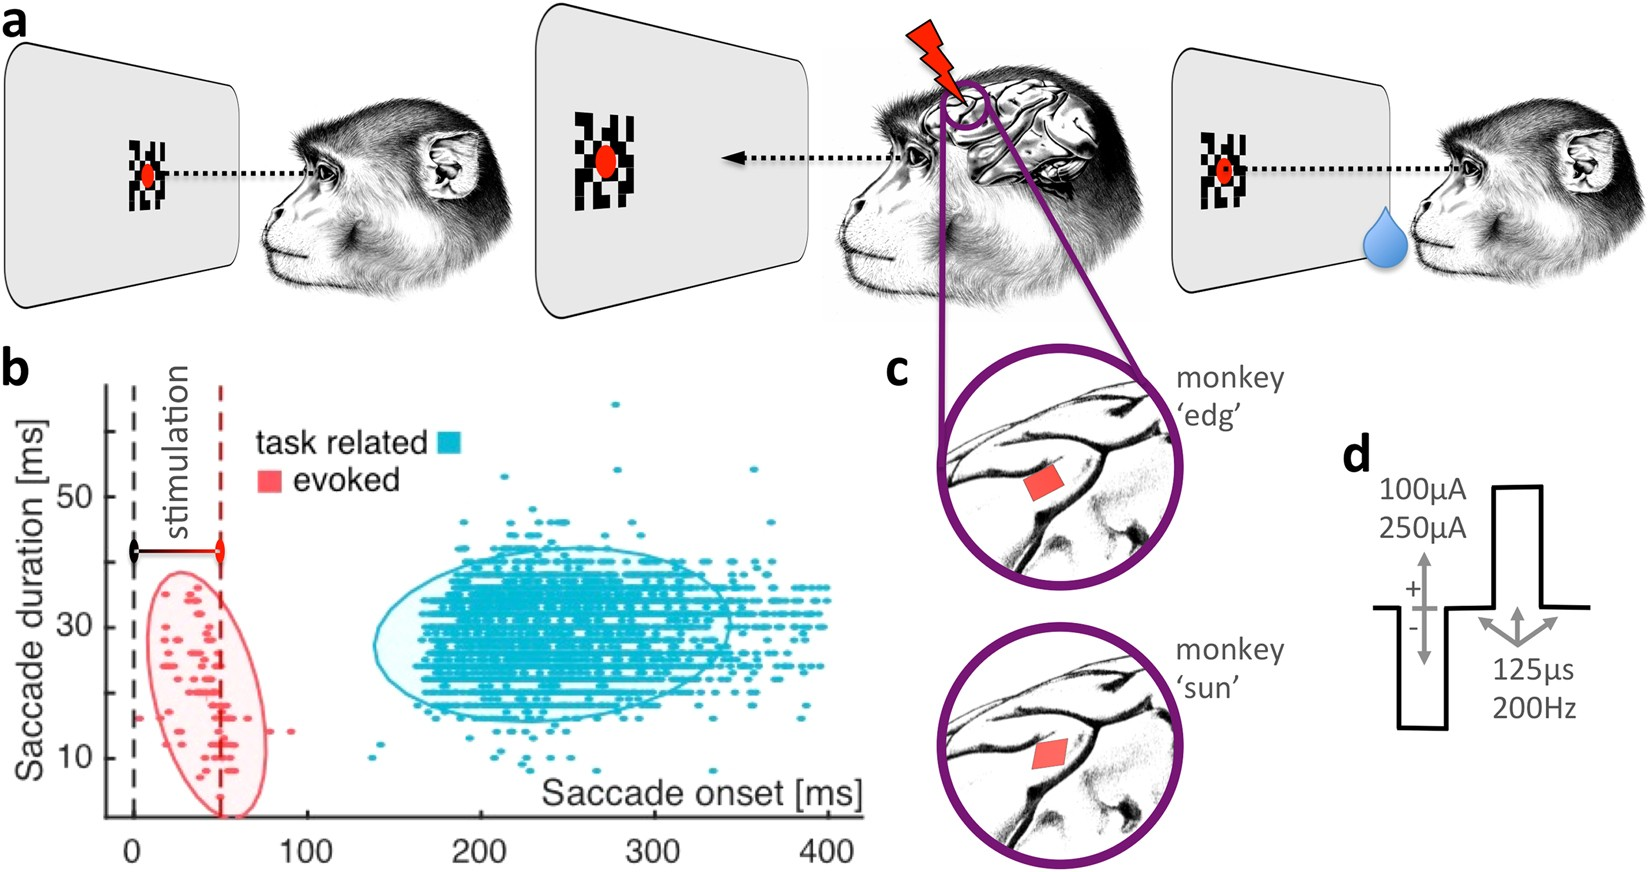 Electrical stimulation of macaque lateral prefrontal cortex